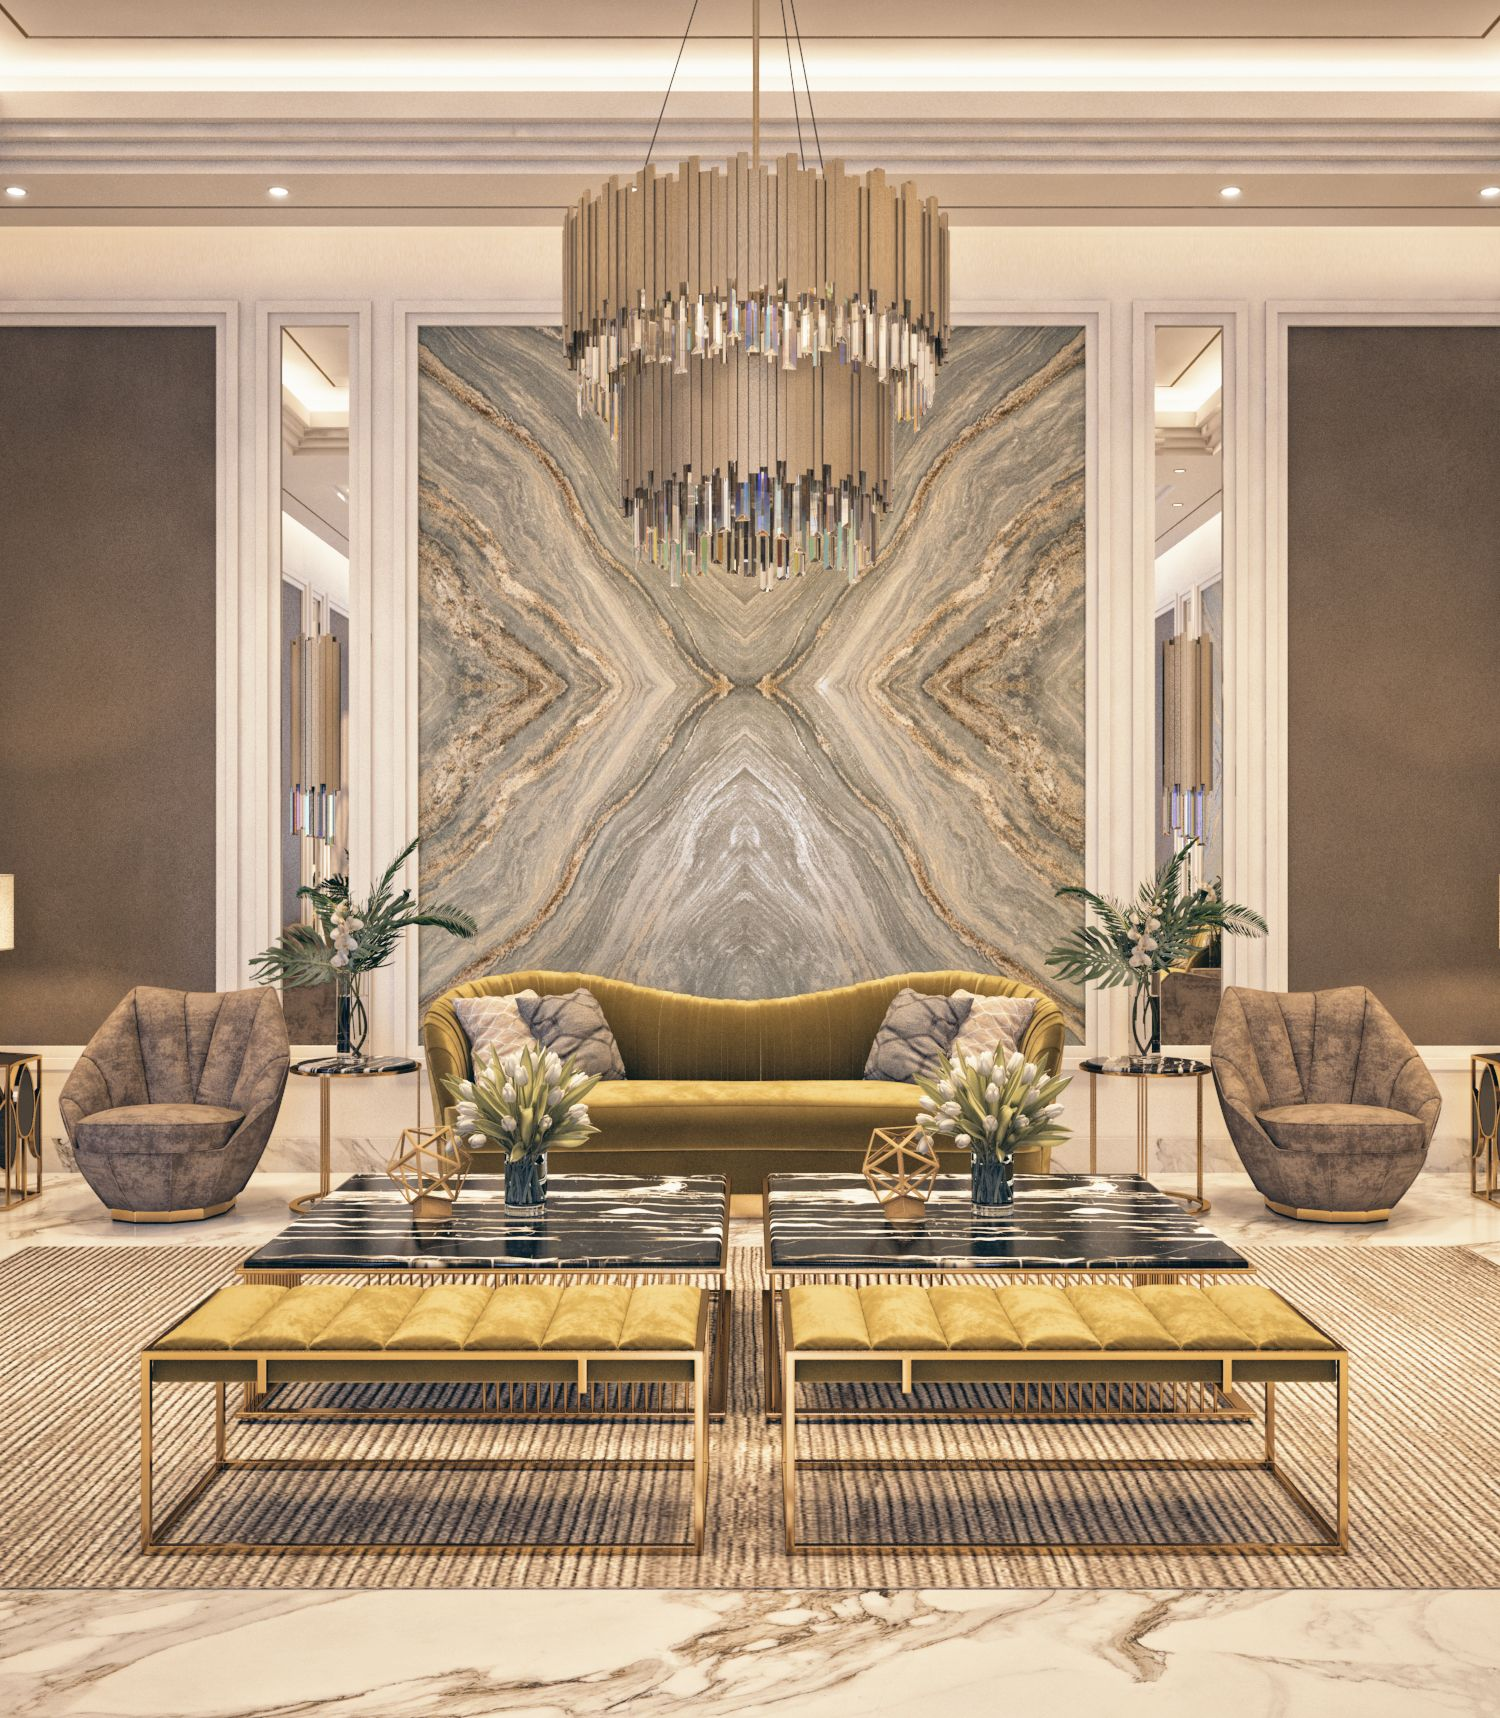 Luxurious Main Reception Interior Design By Amsolutions Riyadh